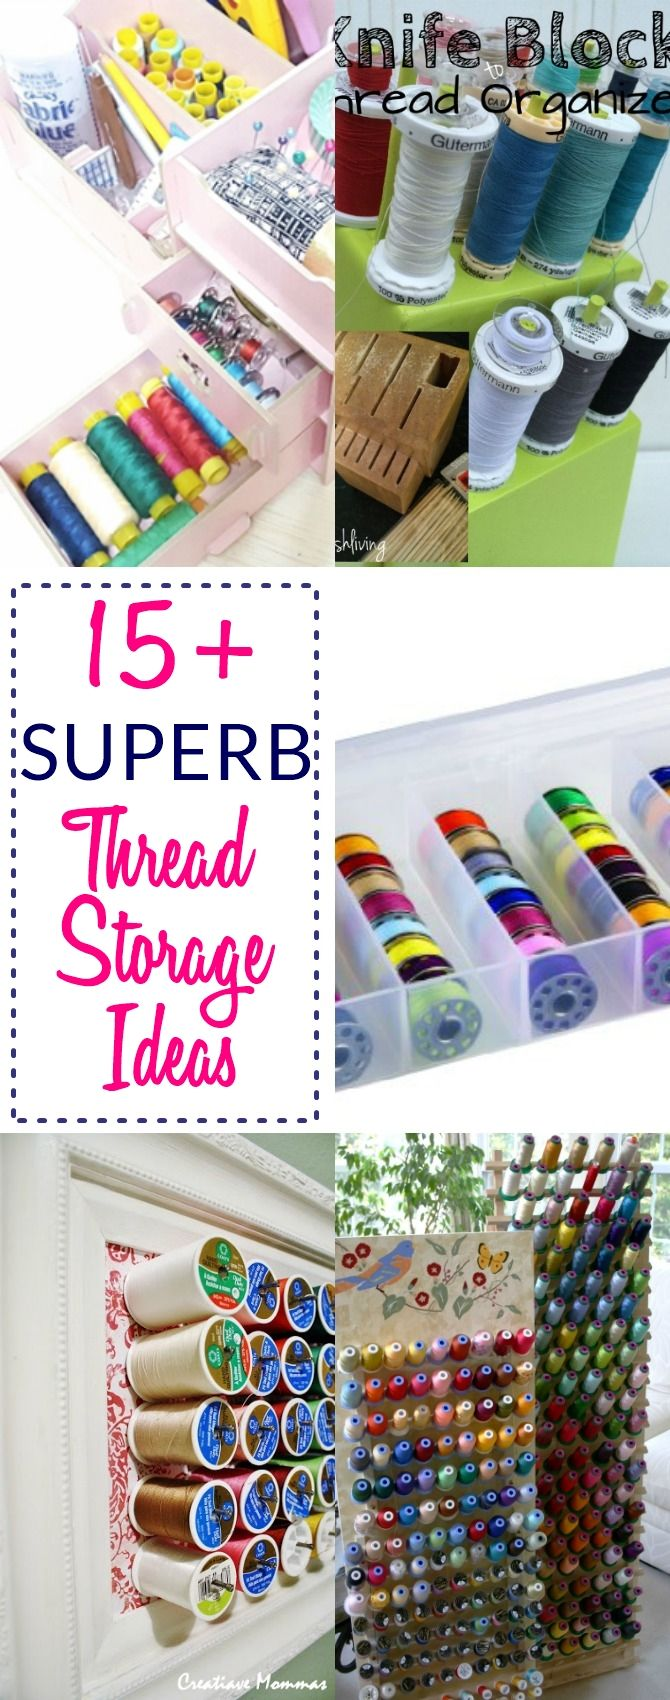 Superior 15+ SUPERB And Affordable Sewing Thread Storage Ideas